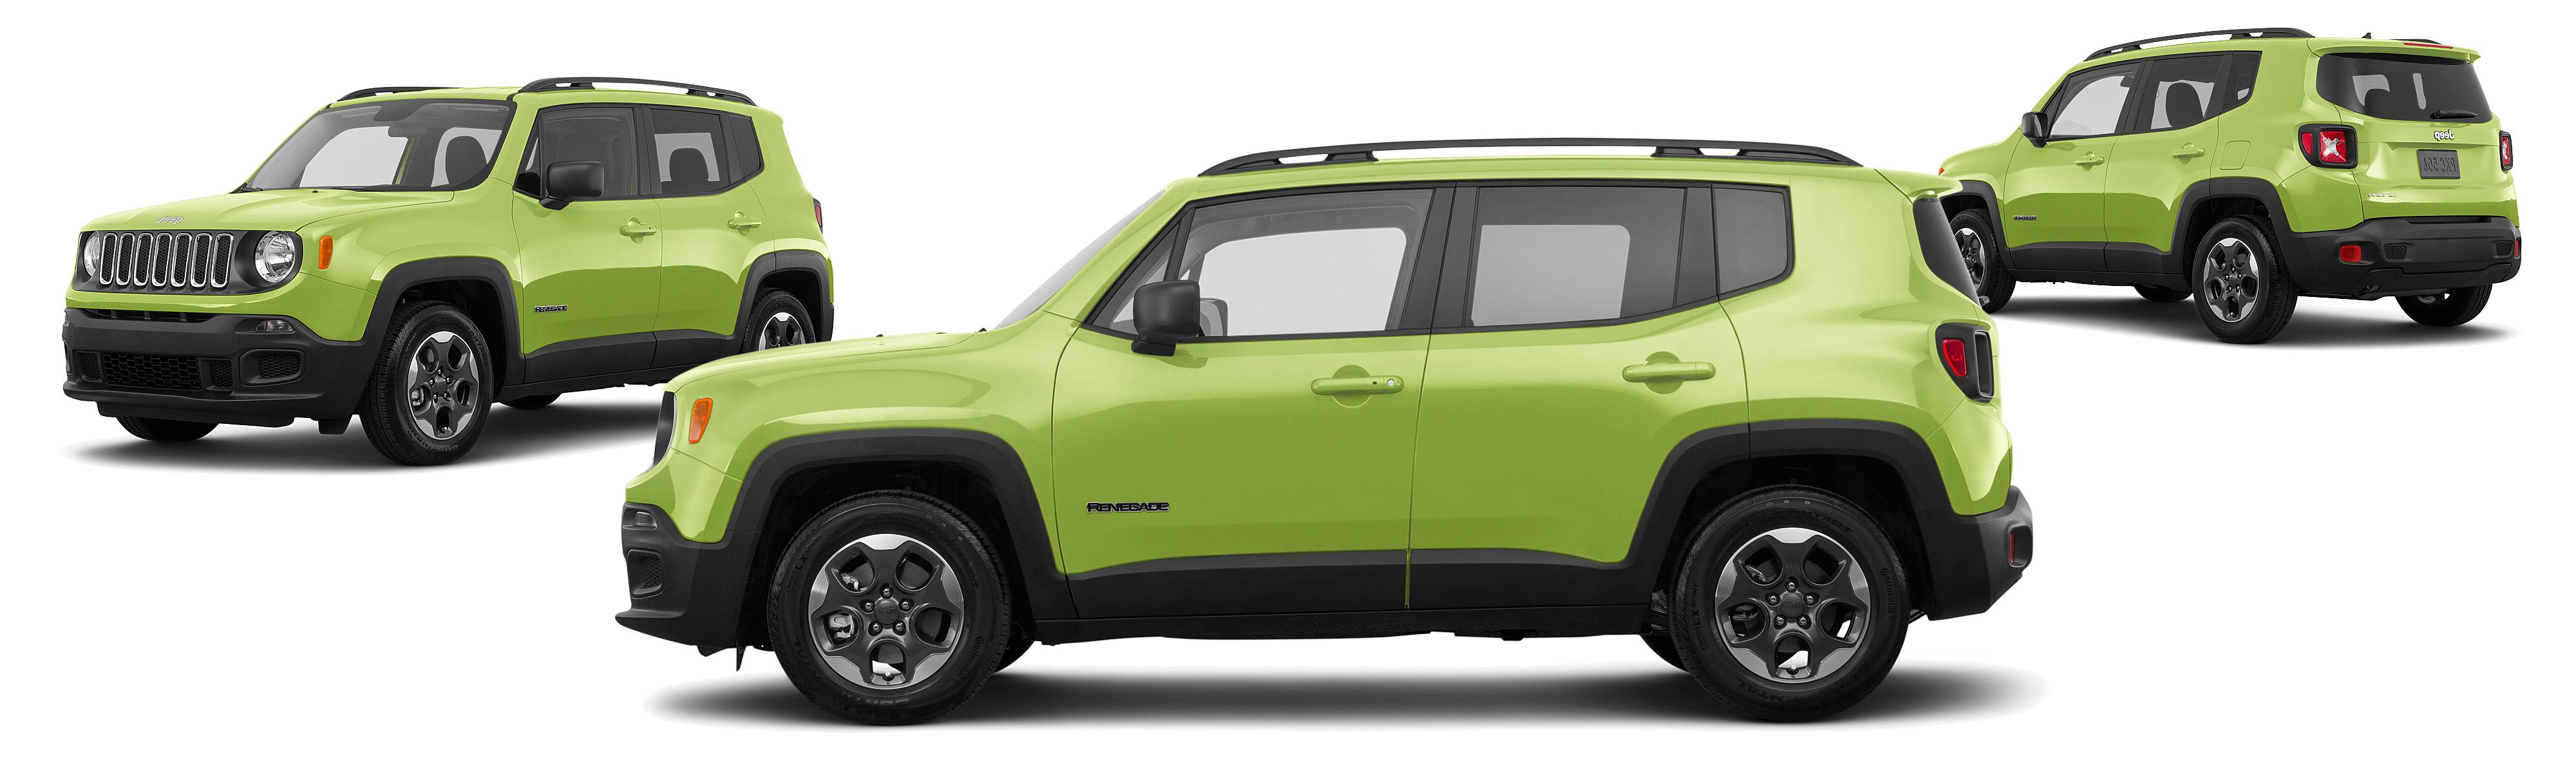 100 sports jeep 2017 2017 jeep cherokee our review cars com new 2018 jeep cherokee. Black Bedroom Furniture Sets. Home Design Ideas